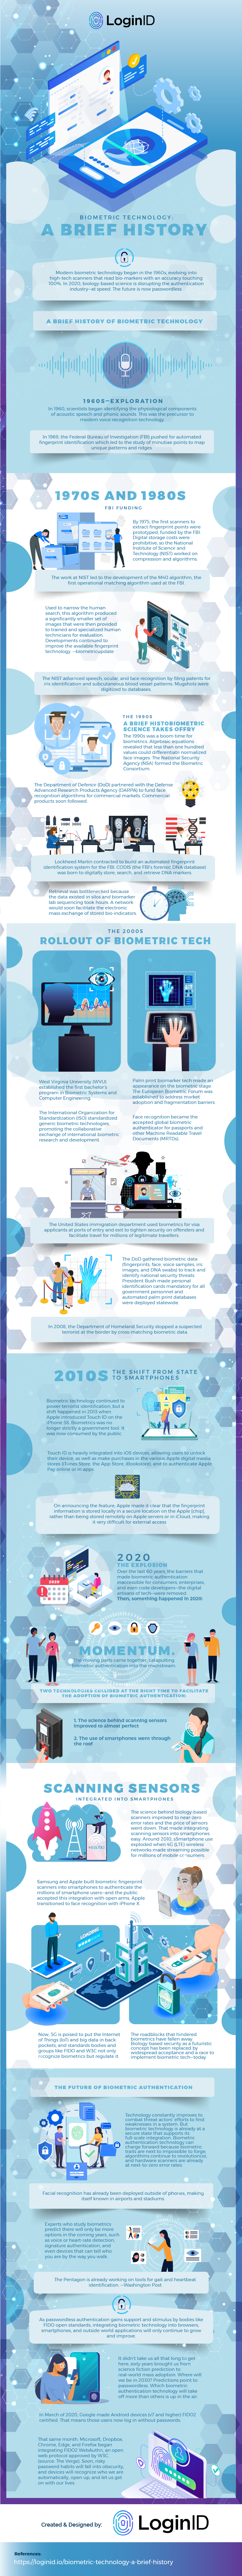 Biometric Technology a brief history2481